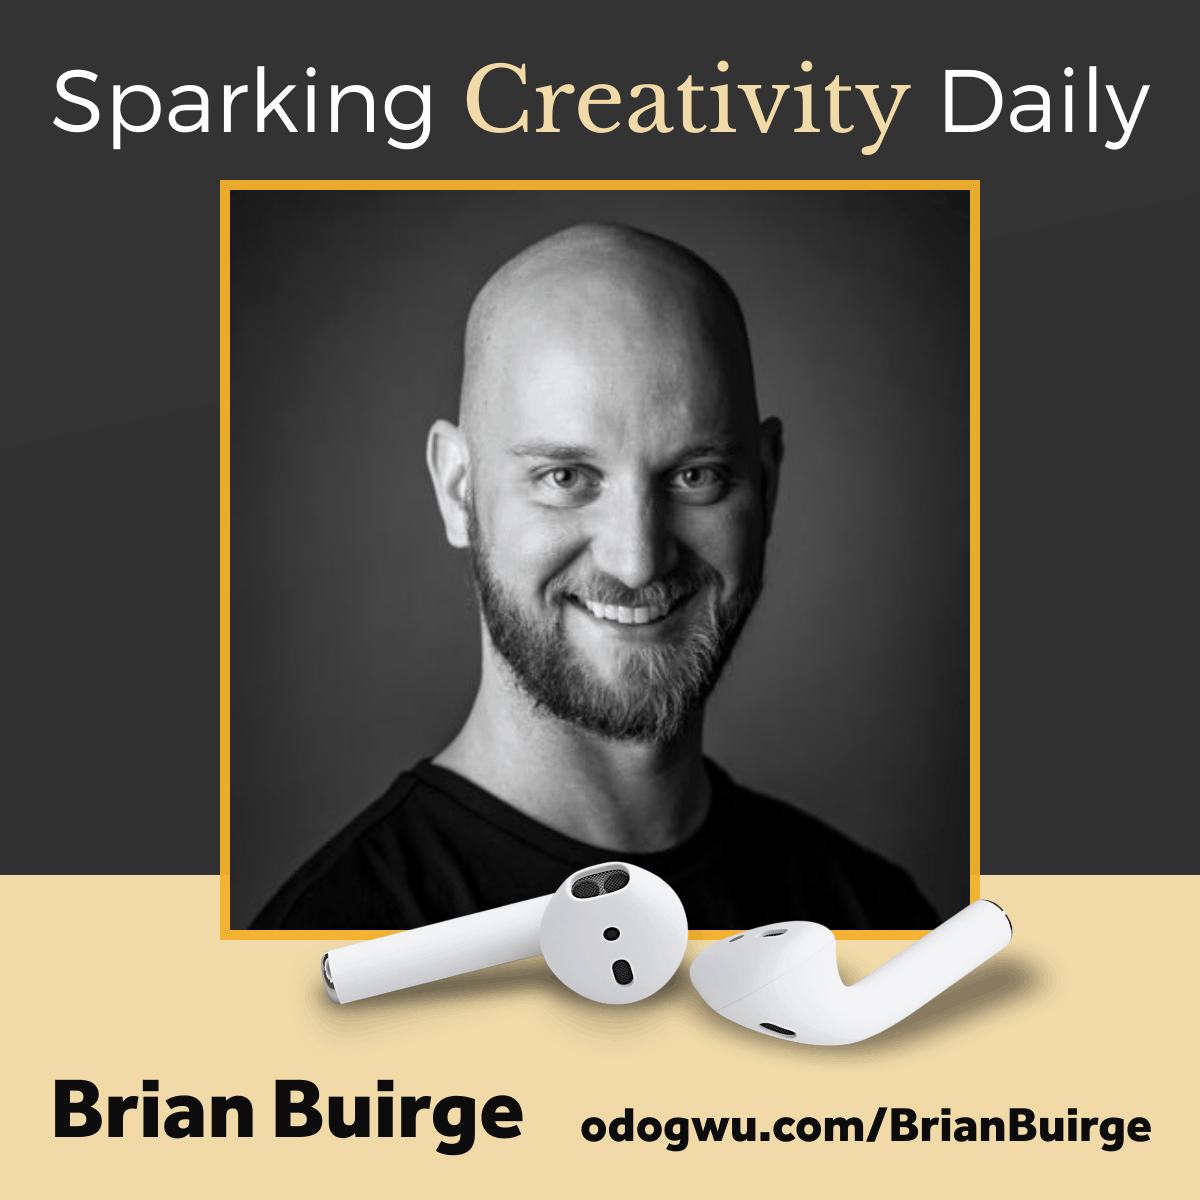 Brian Buirge Teaches You How To Spark Creativity At Work